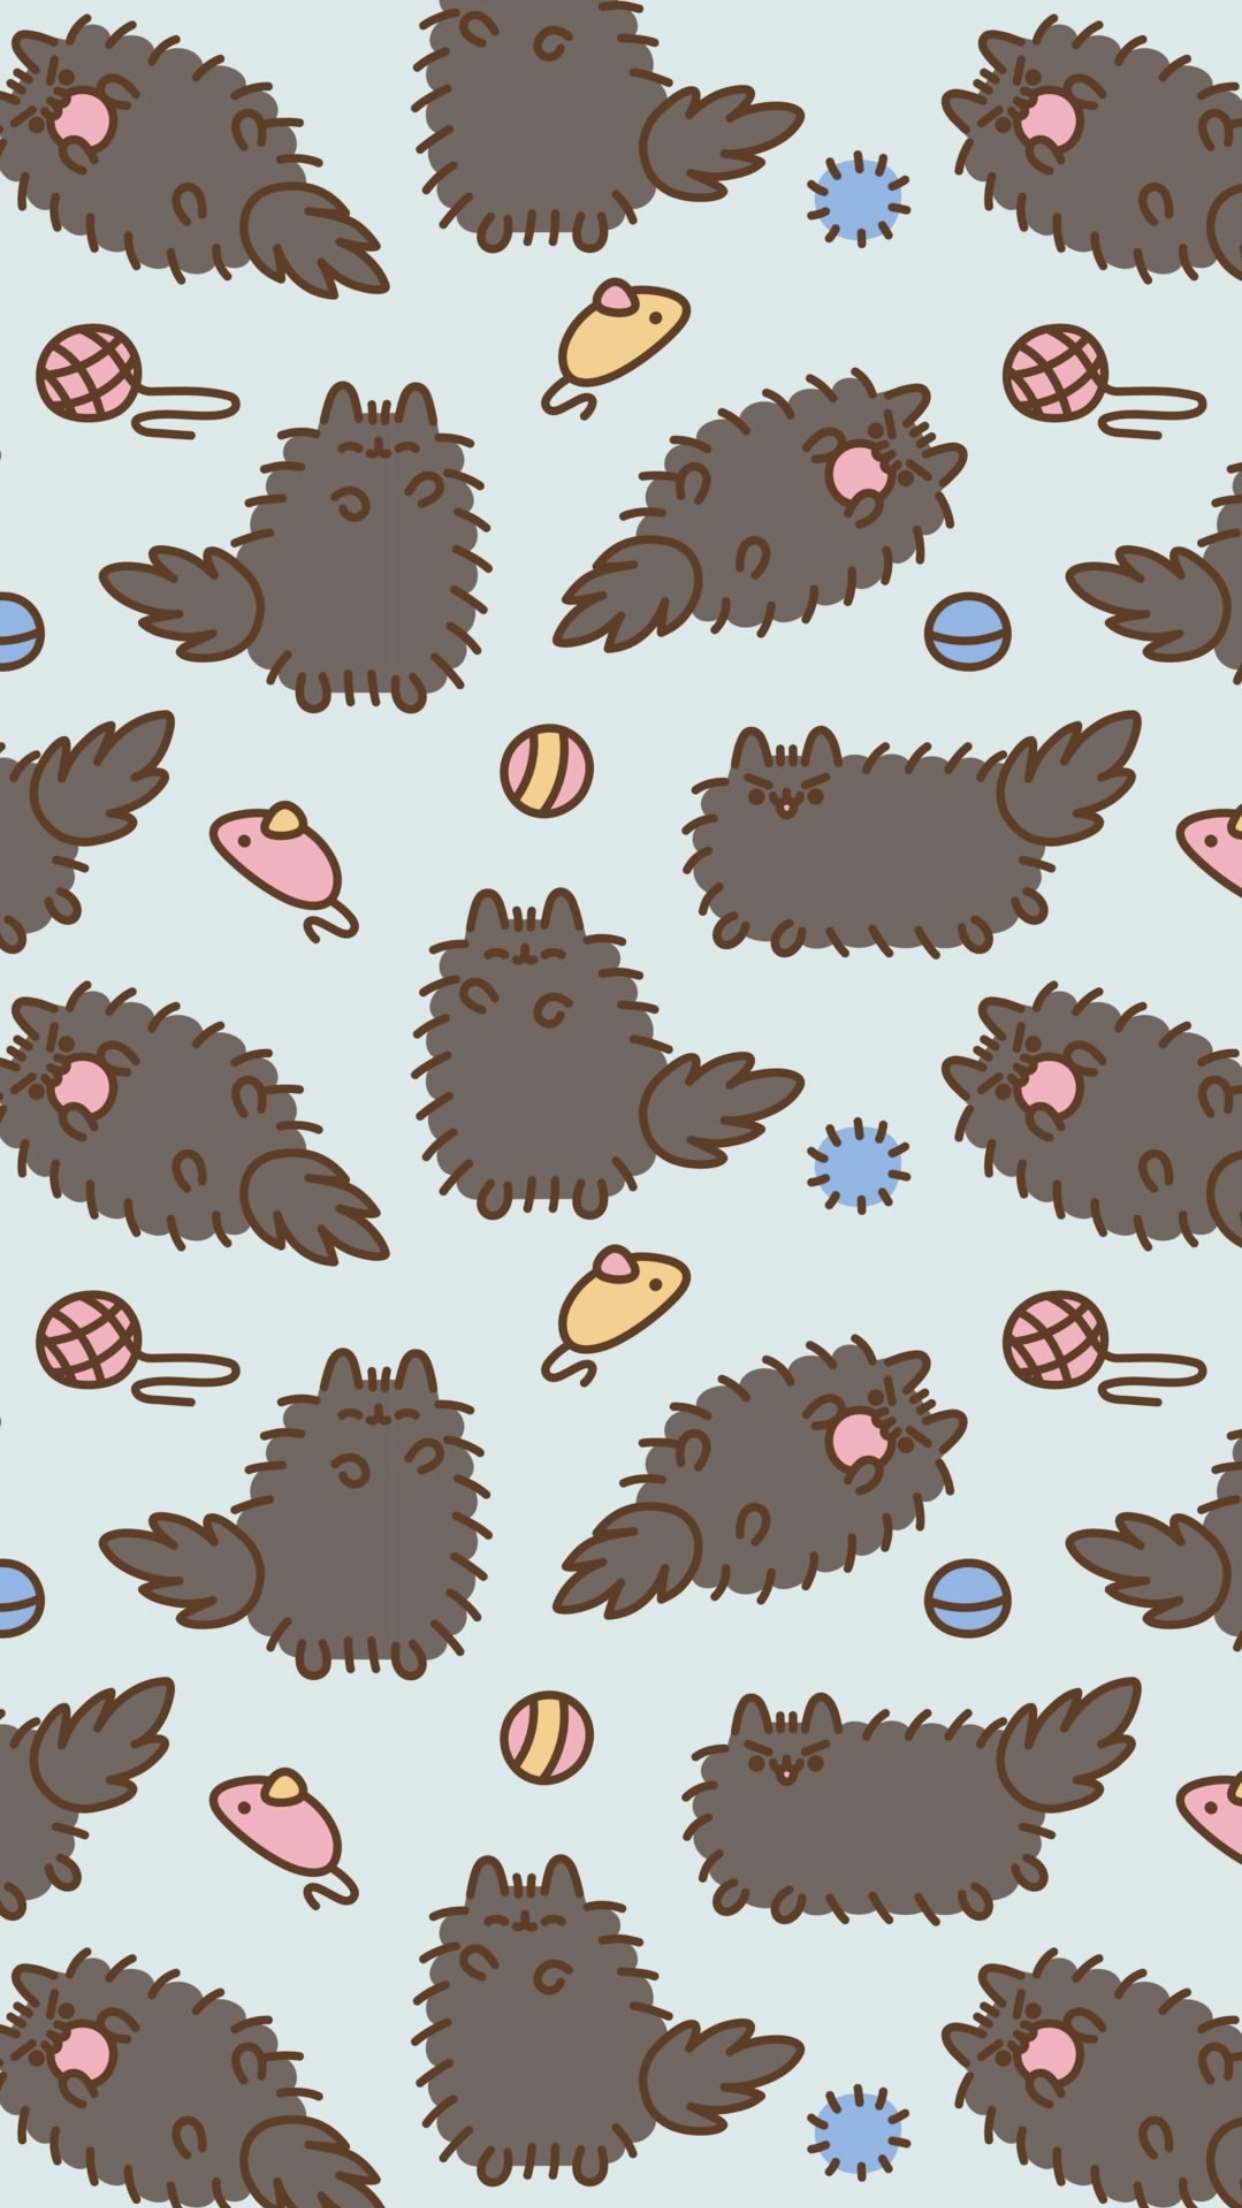 pusheen the cat iphone wallpaper background winter snow iphone